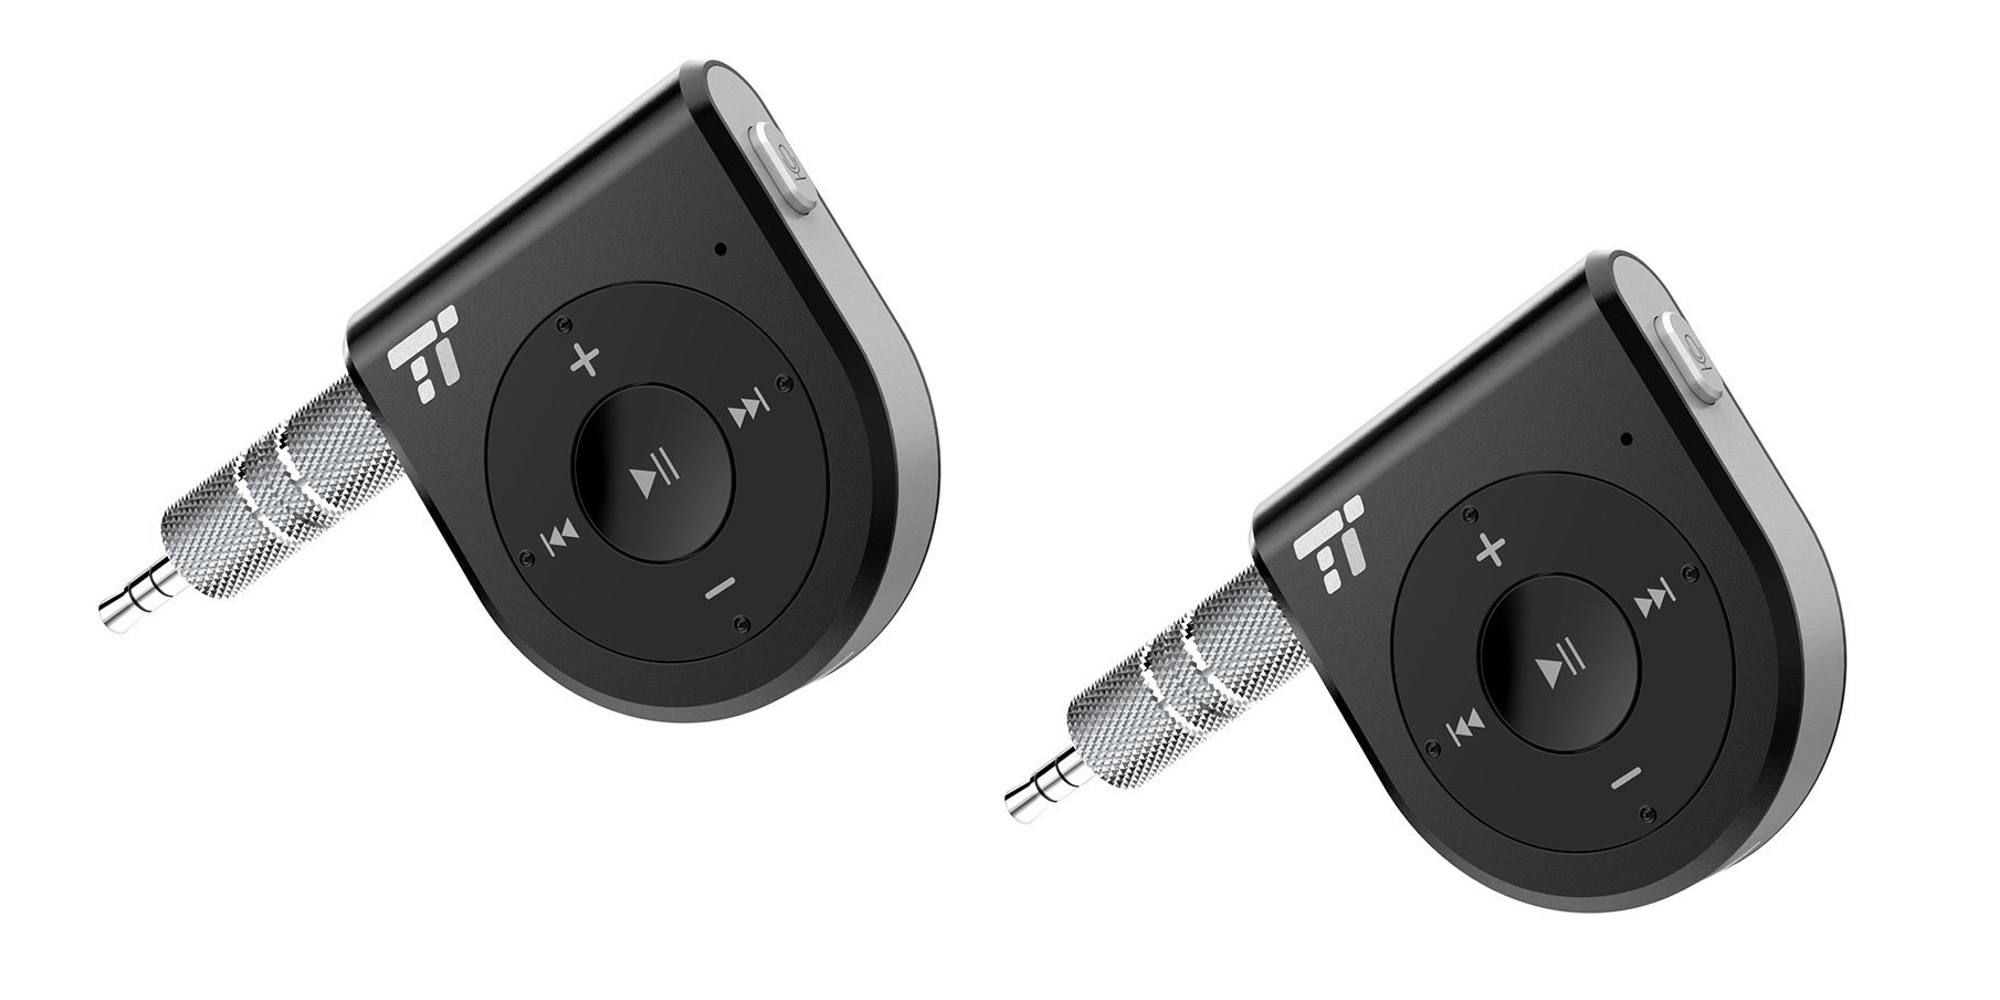 Breathe new life into your car's aging stereo w/ this Bluetooth receiver for $15 (25% off)